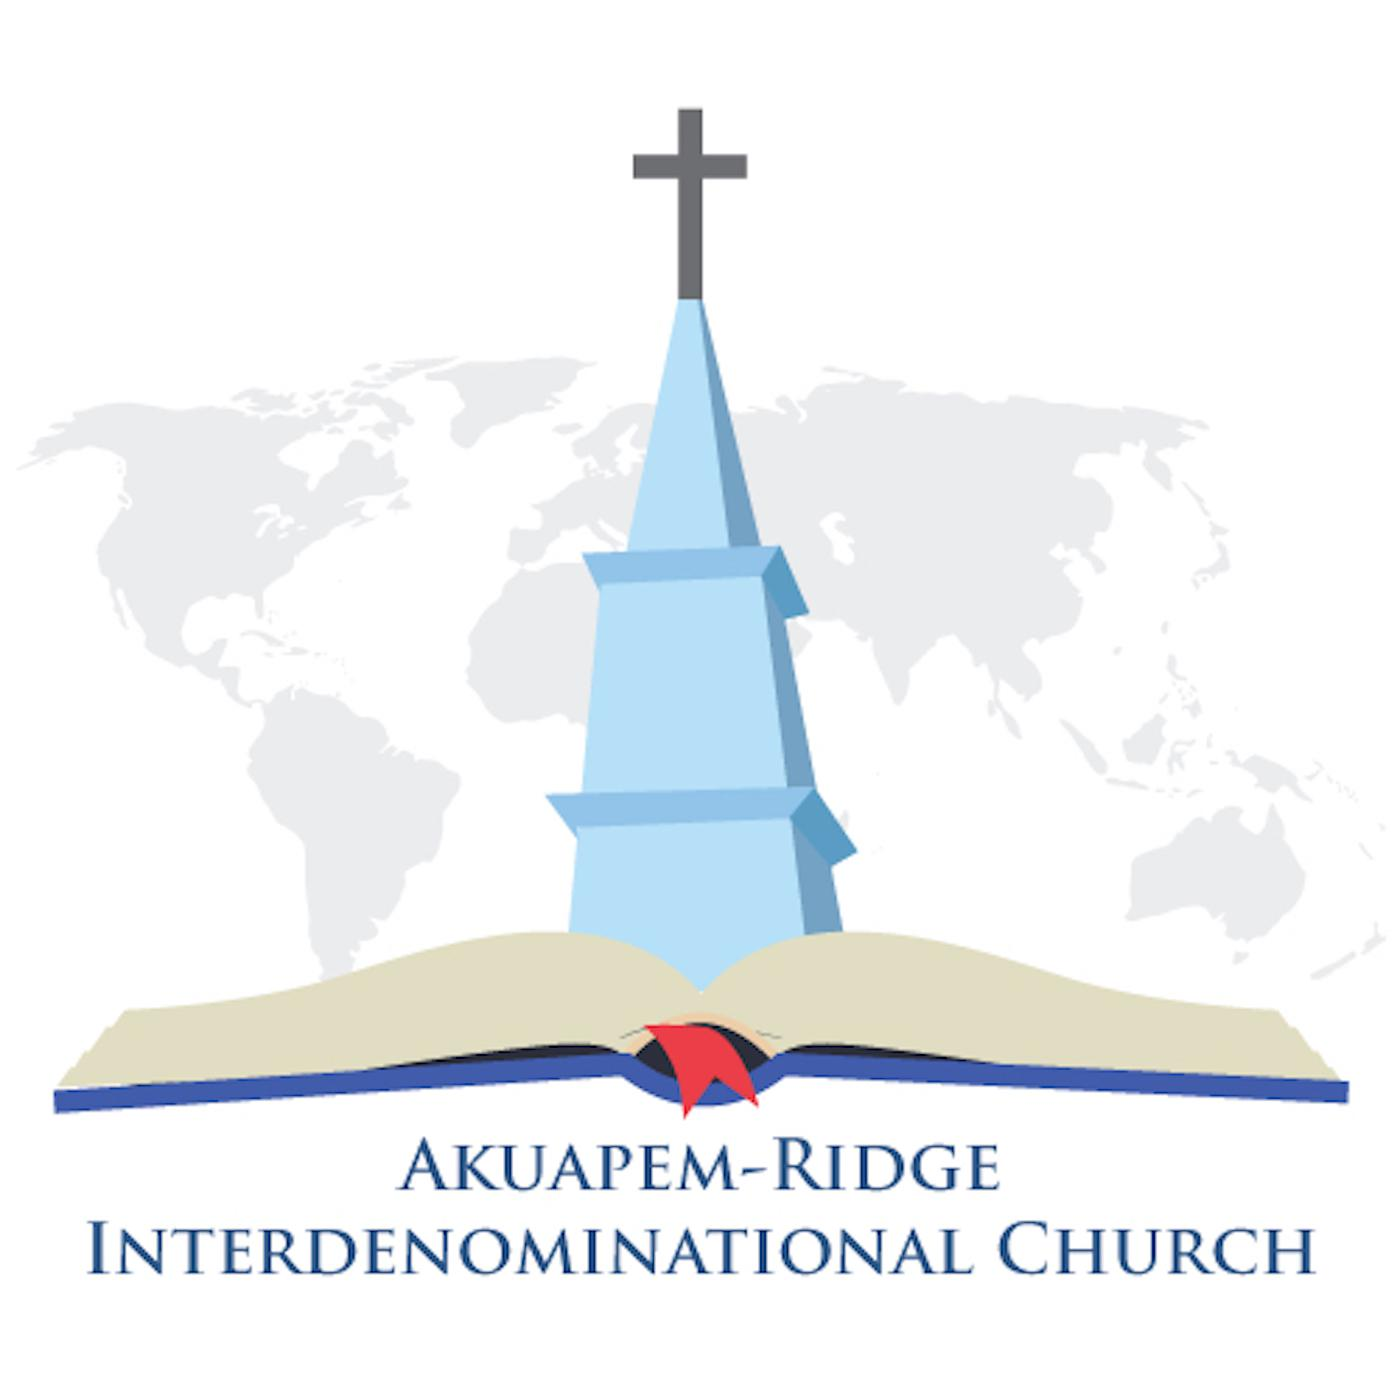 Akuapem-Ridge Interdenominational Church Sermons (podcast) - Akuapem